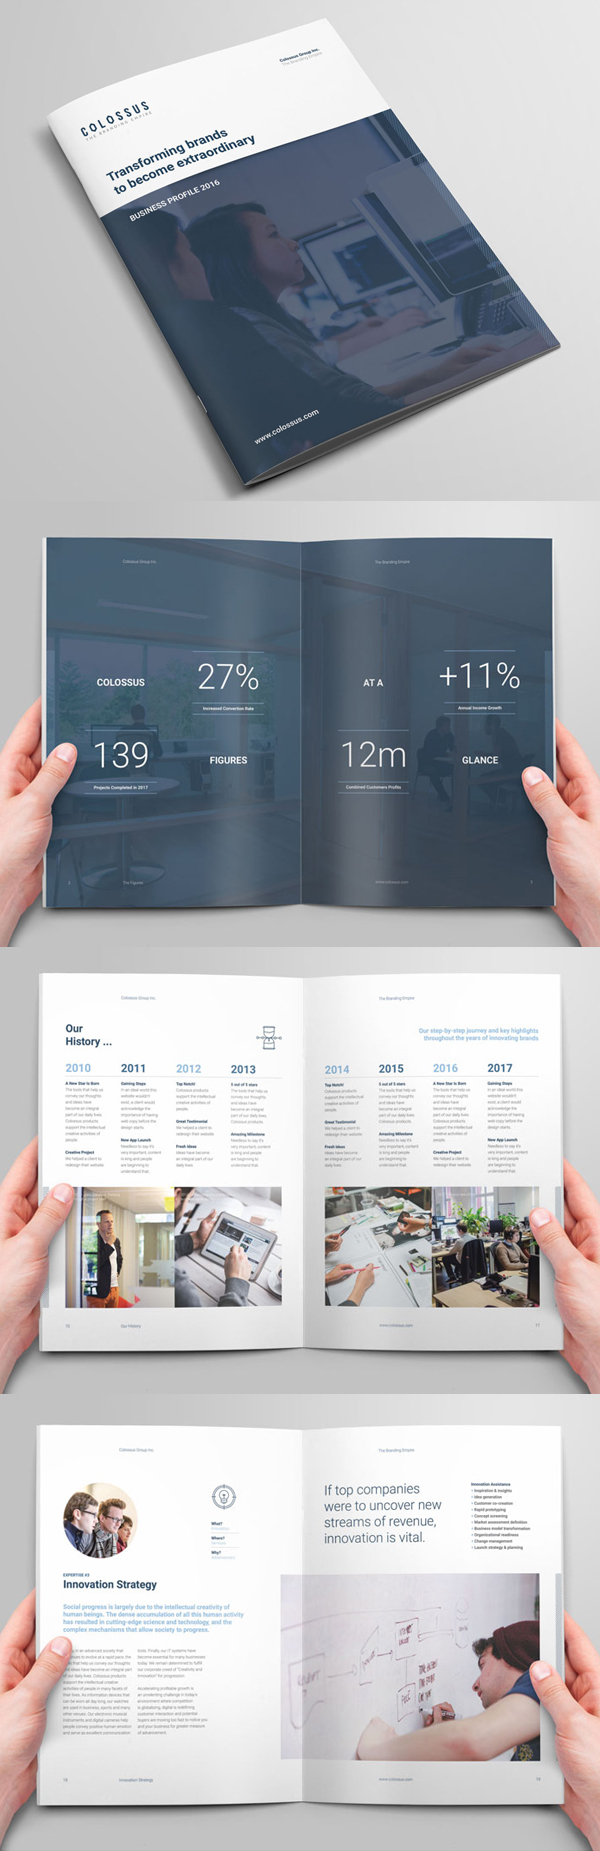 100 Professional Corporate Brochure Templates - 16